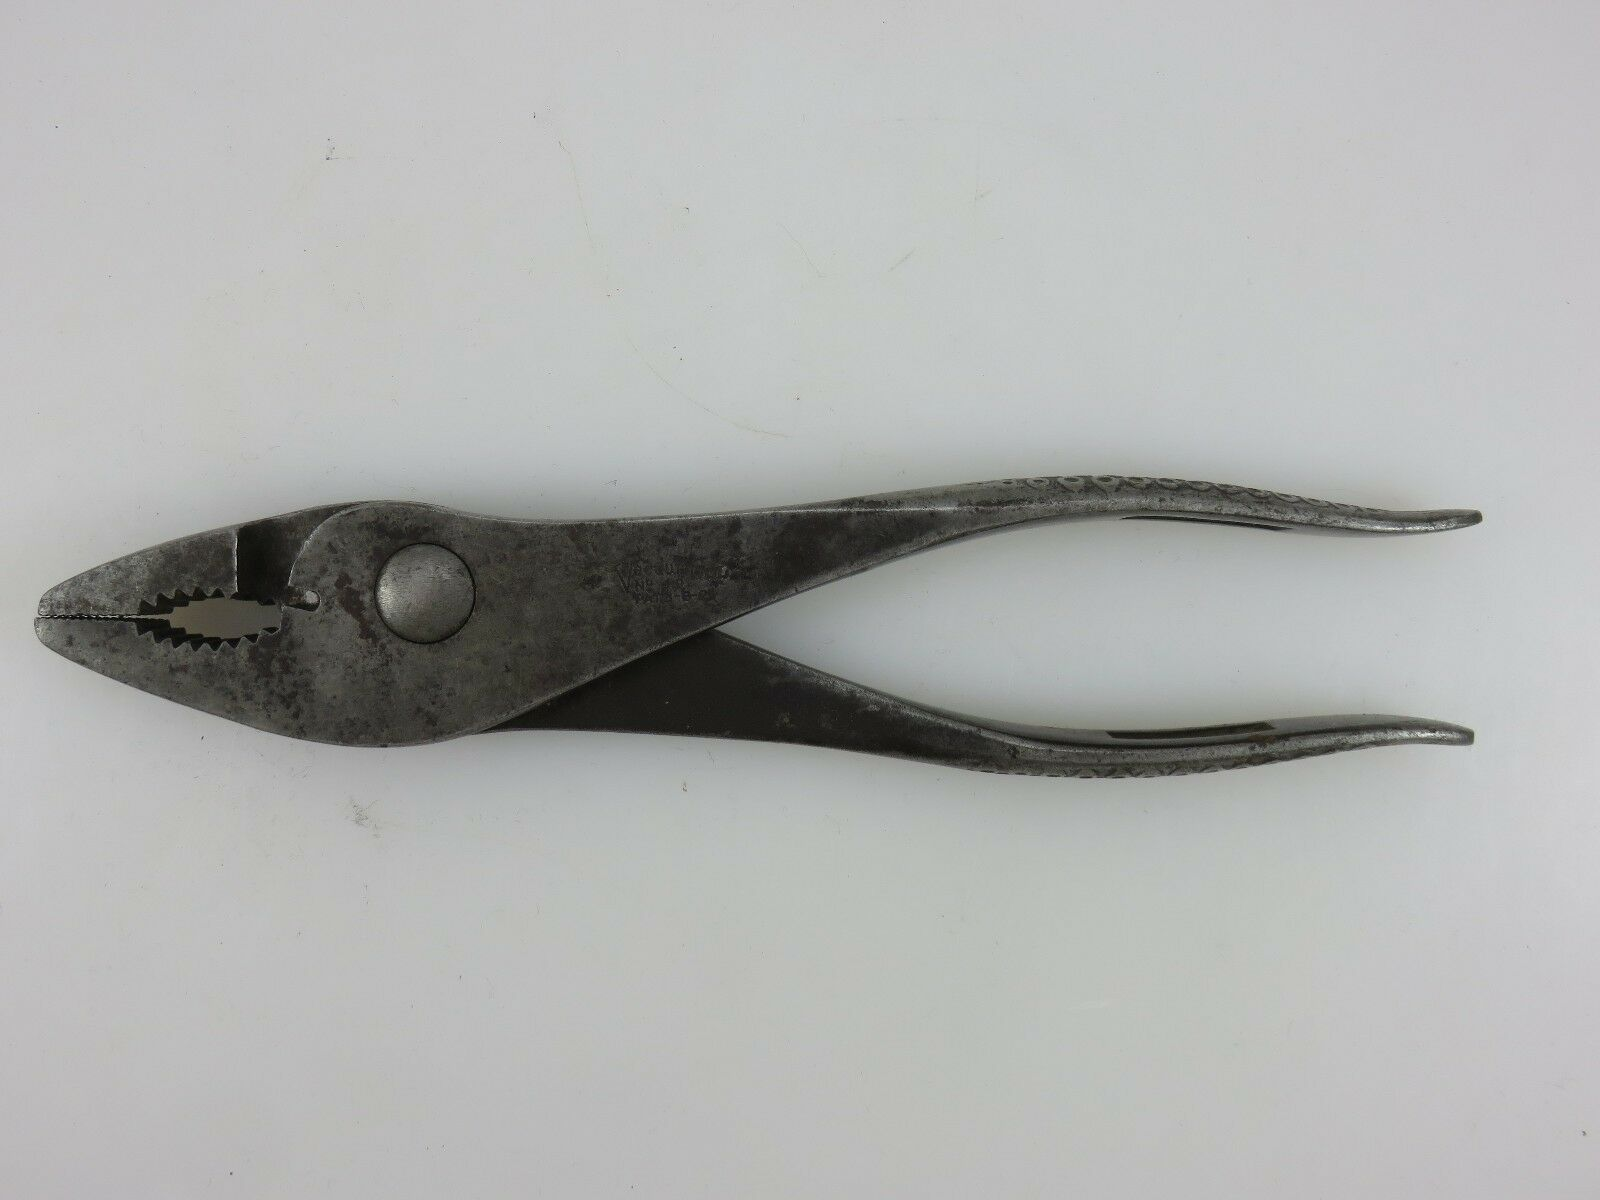 Forged Steel Products Vacuum Grip Slip-Joint Pliers Model 49 Vintage Made In USA